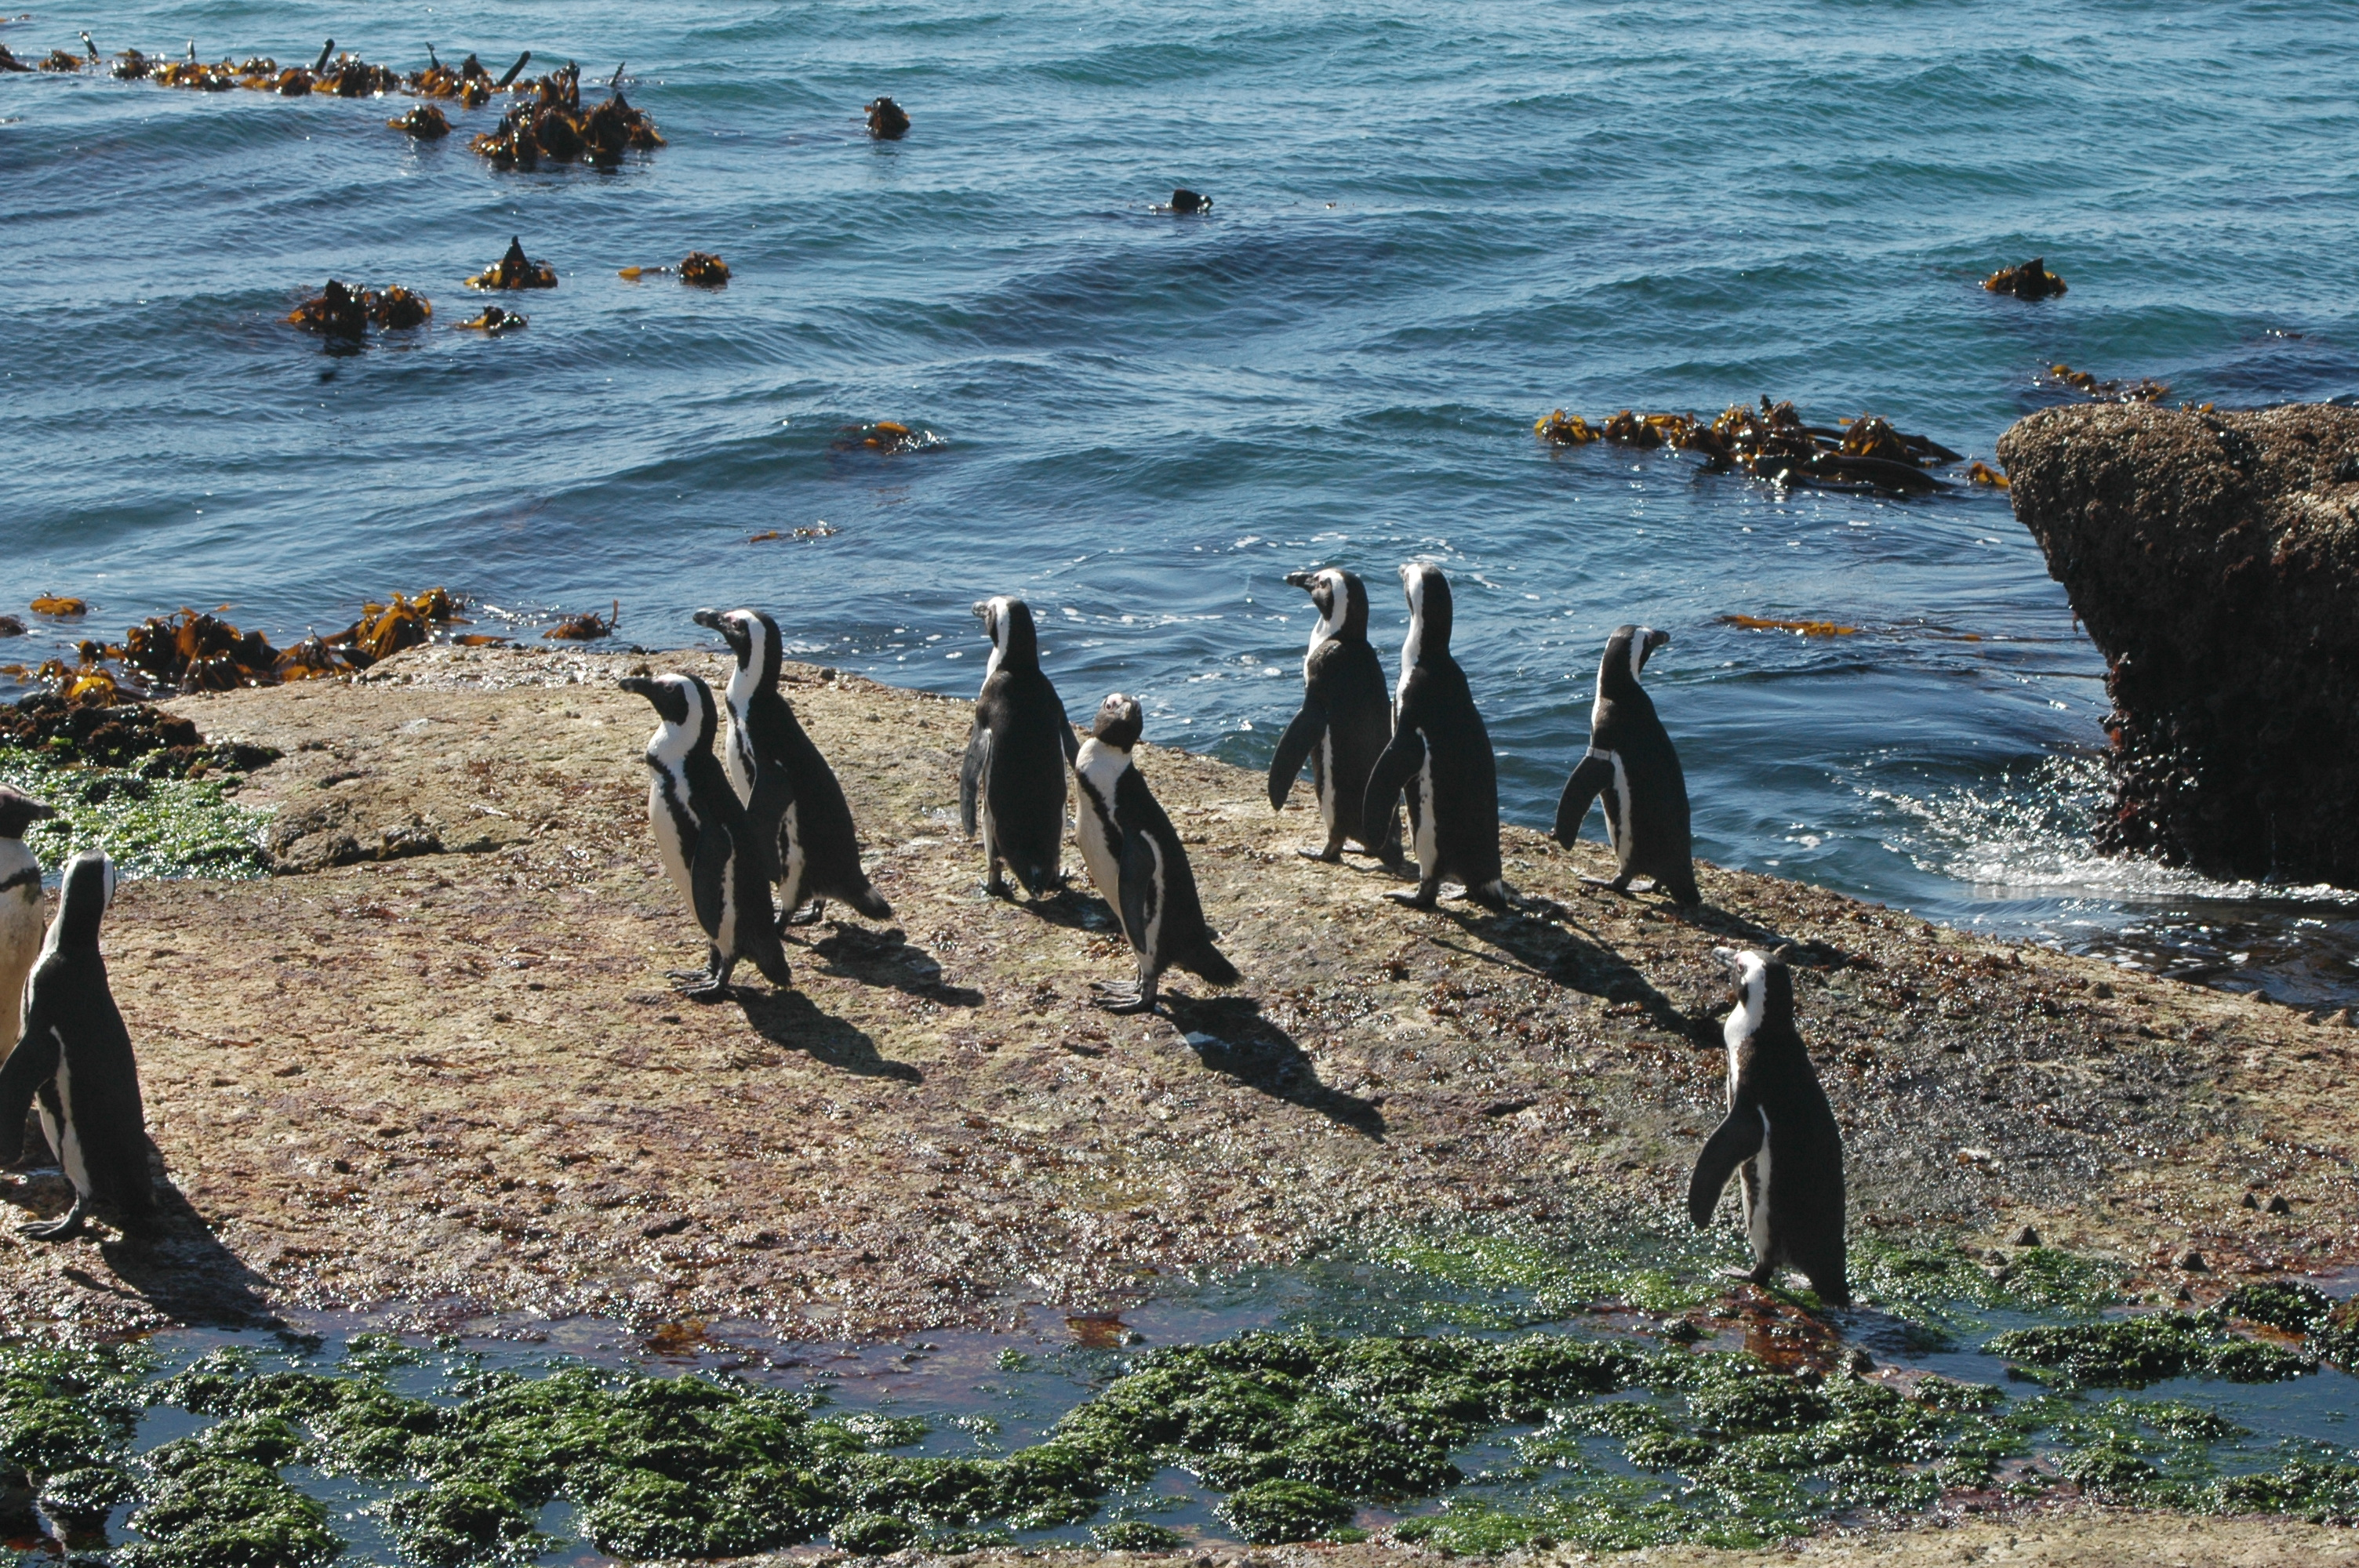 Penguins at Boulders Beach